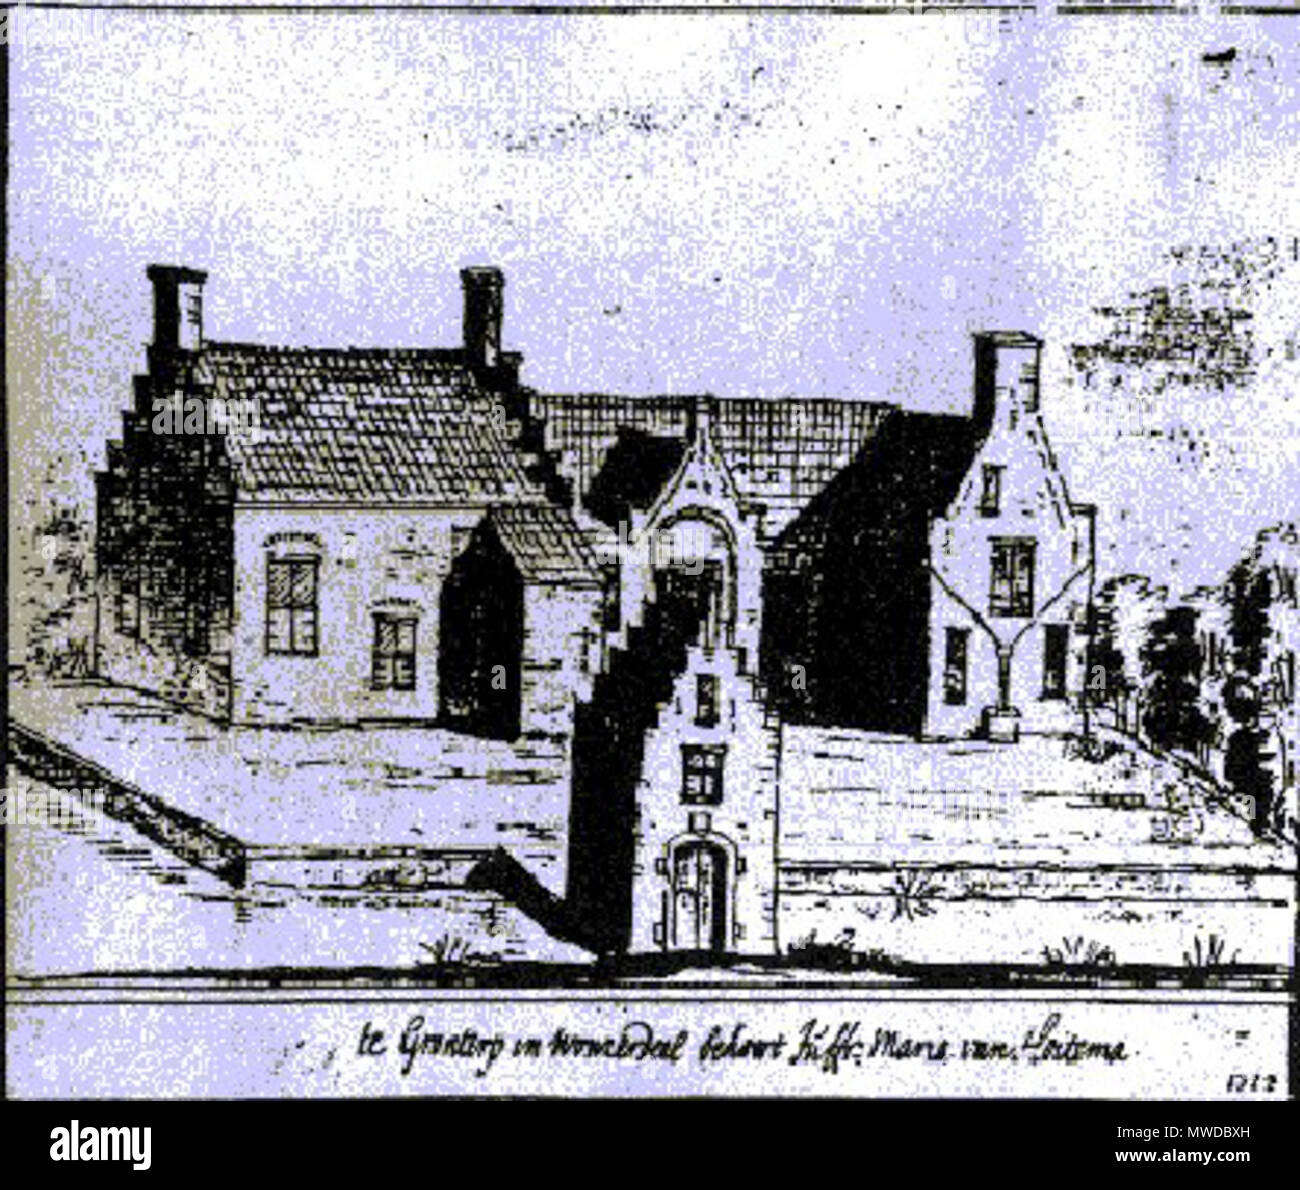 . Frysk: In print fan de Hoytema State út 1722, tekene troch Stellingwerf De tekening is yn it Printekabinet fan it Frysk Museum. Nederlands: Een prent van de Hoytema State uit 1722, getekend door Stellingwerf. De tekening bevindt zich in het Prentenkabinet in het Fries Museum te Leeuwarden. 26 December 2006 (original upload date). The original uploader was Horus at Dutch Wikipedia 285 Hoytema State - Stock Image